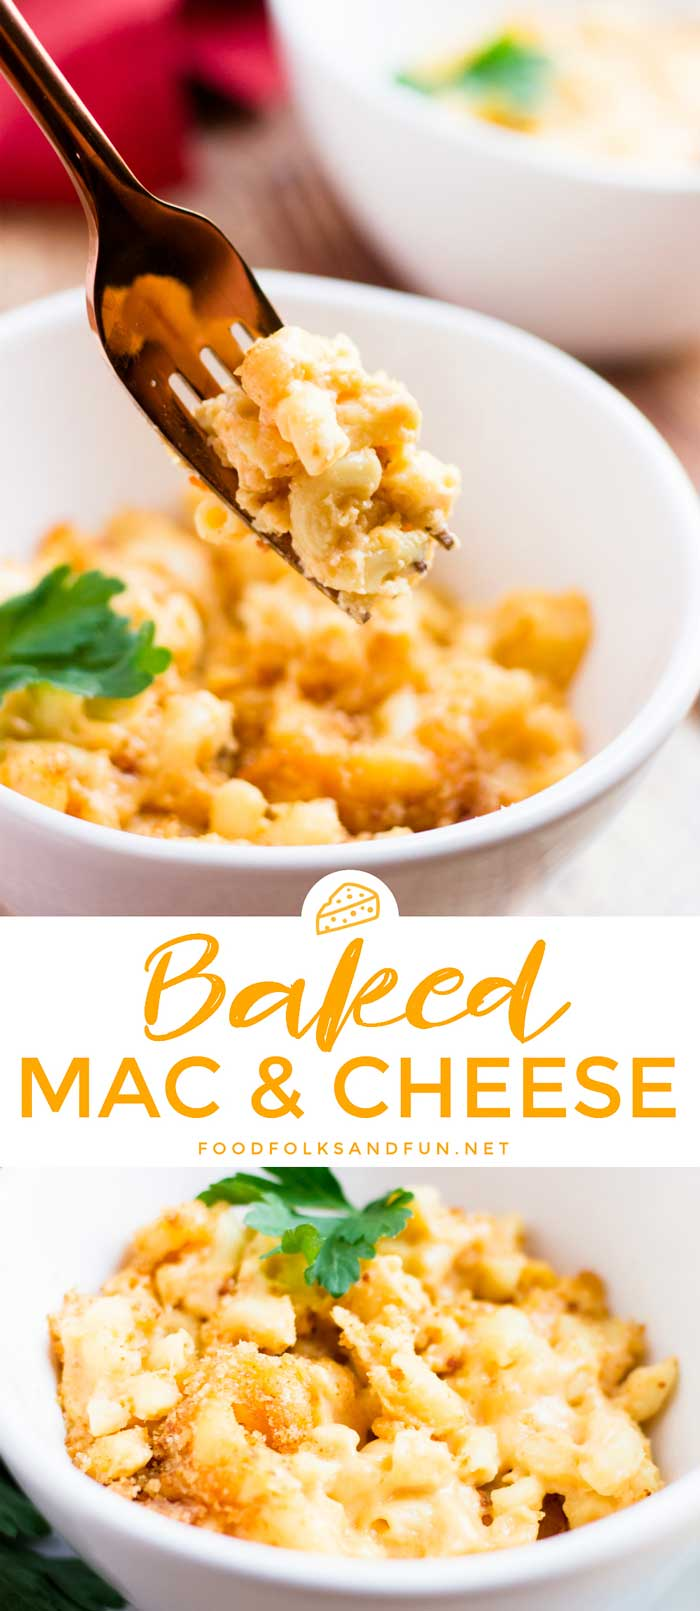 This homemade Baked Mac and Cheese recipe is easy to make and simply the best! The sauce is creamy, velvety and packed with cheesy goodness. via @foodfolksandfun